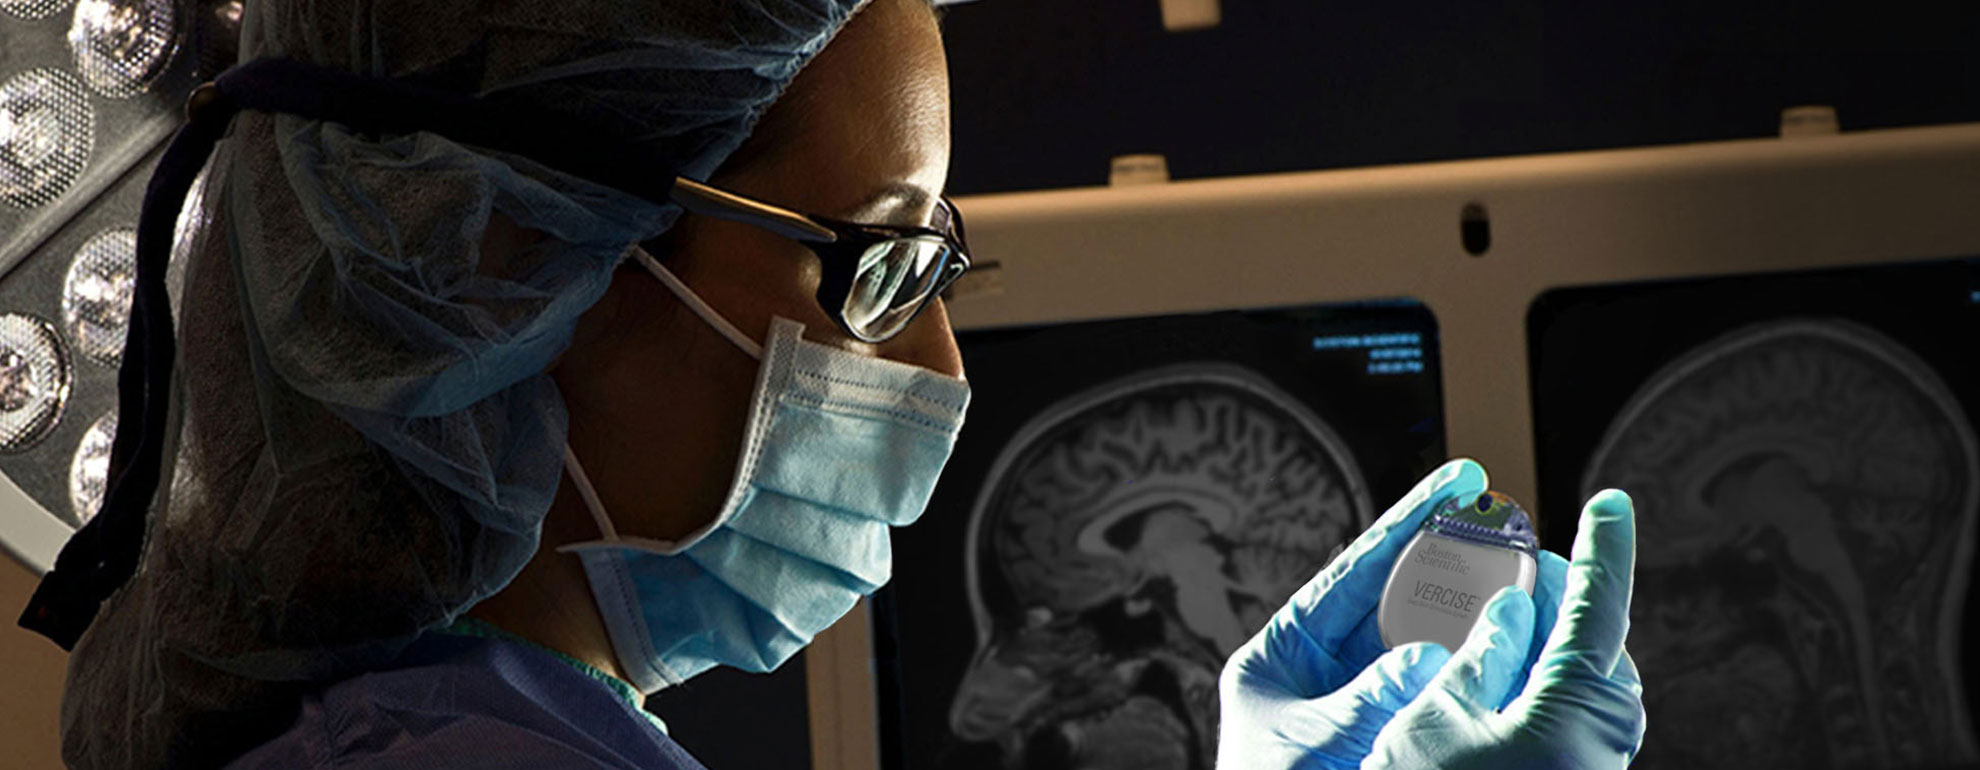 Neurological Surgery - Vercise Deep Brain Stimulation